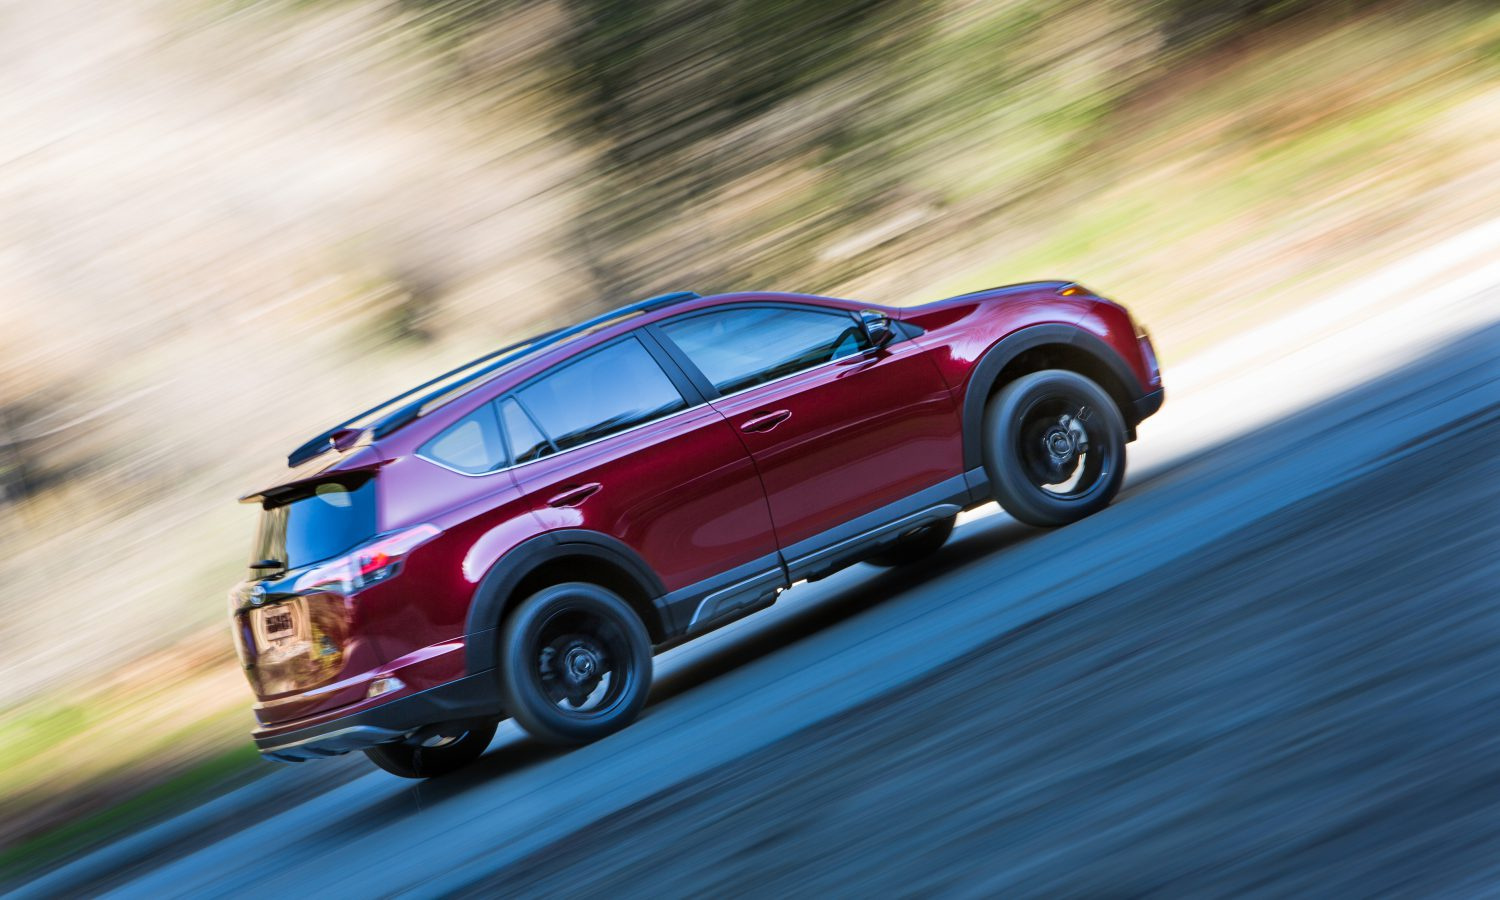 Roughing It in Style – – Toyota Introduces the New 2018 Tundra and Sequoia TRD Sport and RAV4 Adventure Models